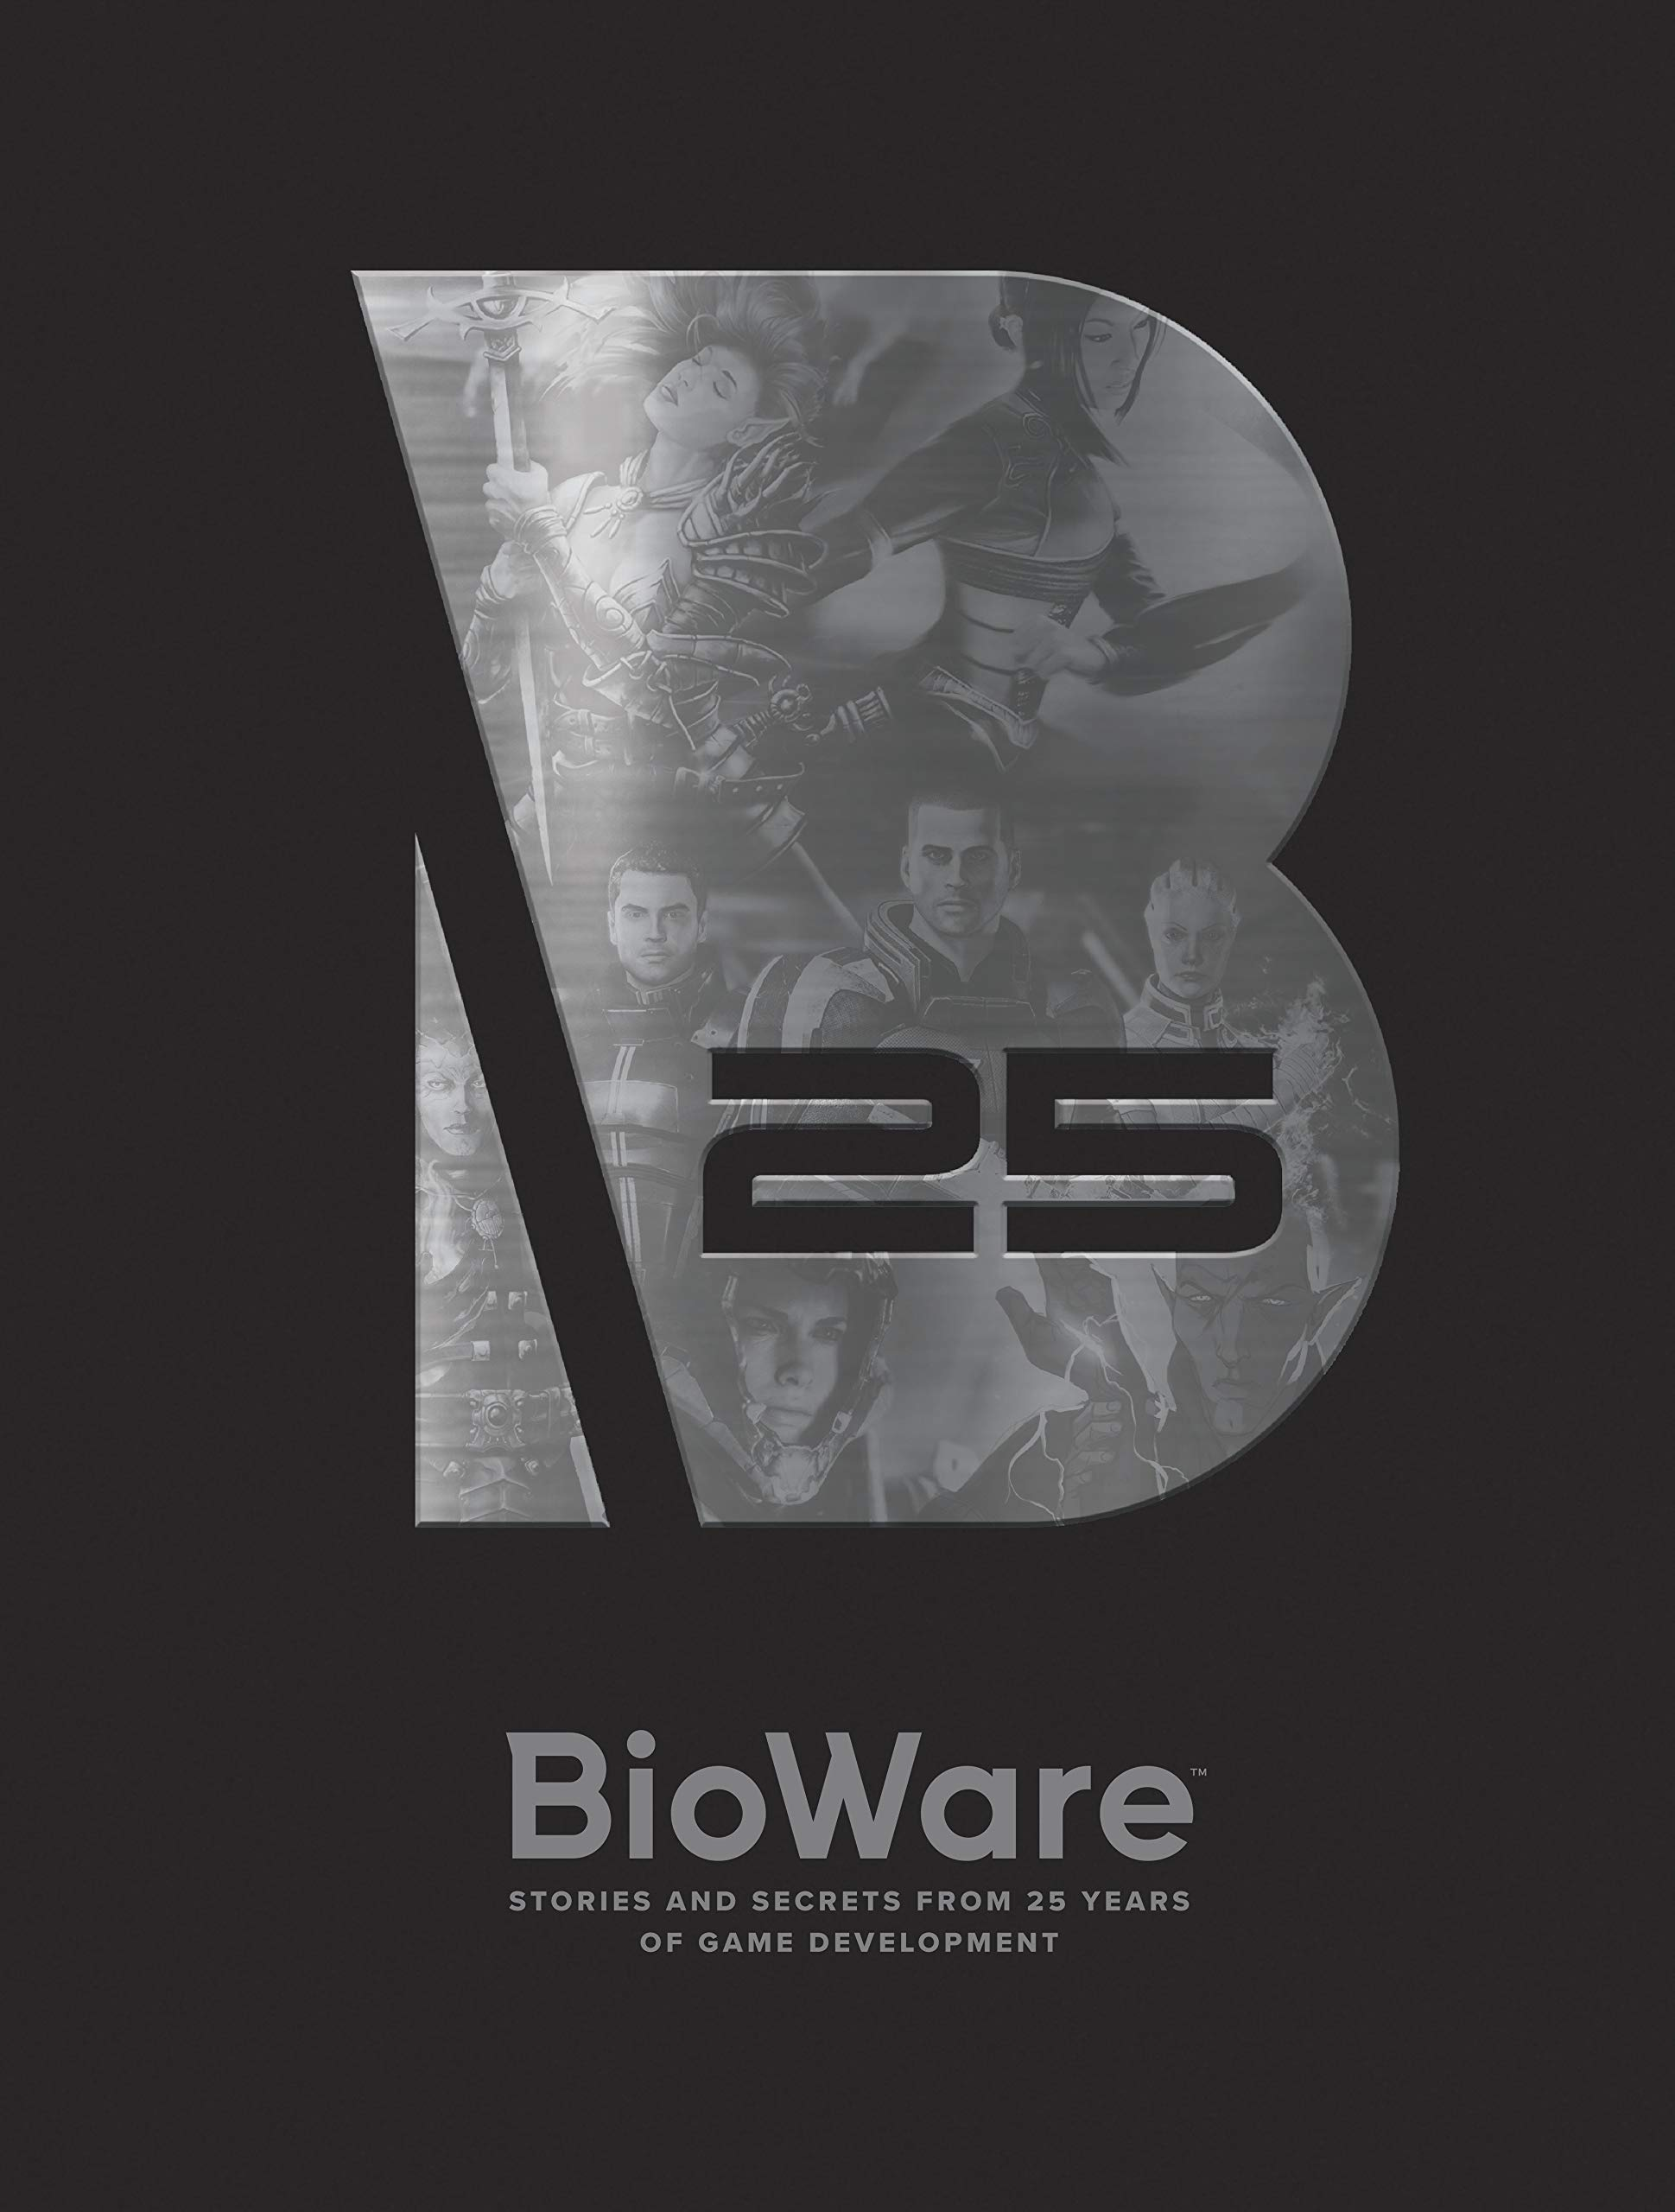 BioWare: Stories and Secrets from 25 Years of Game Development